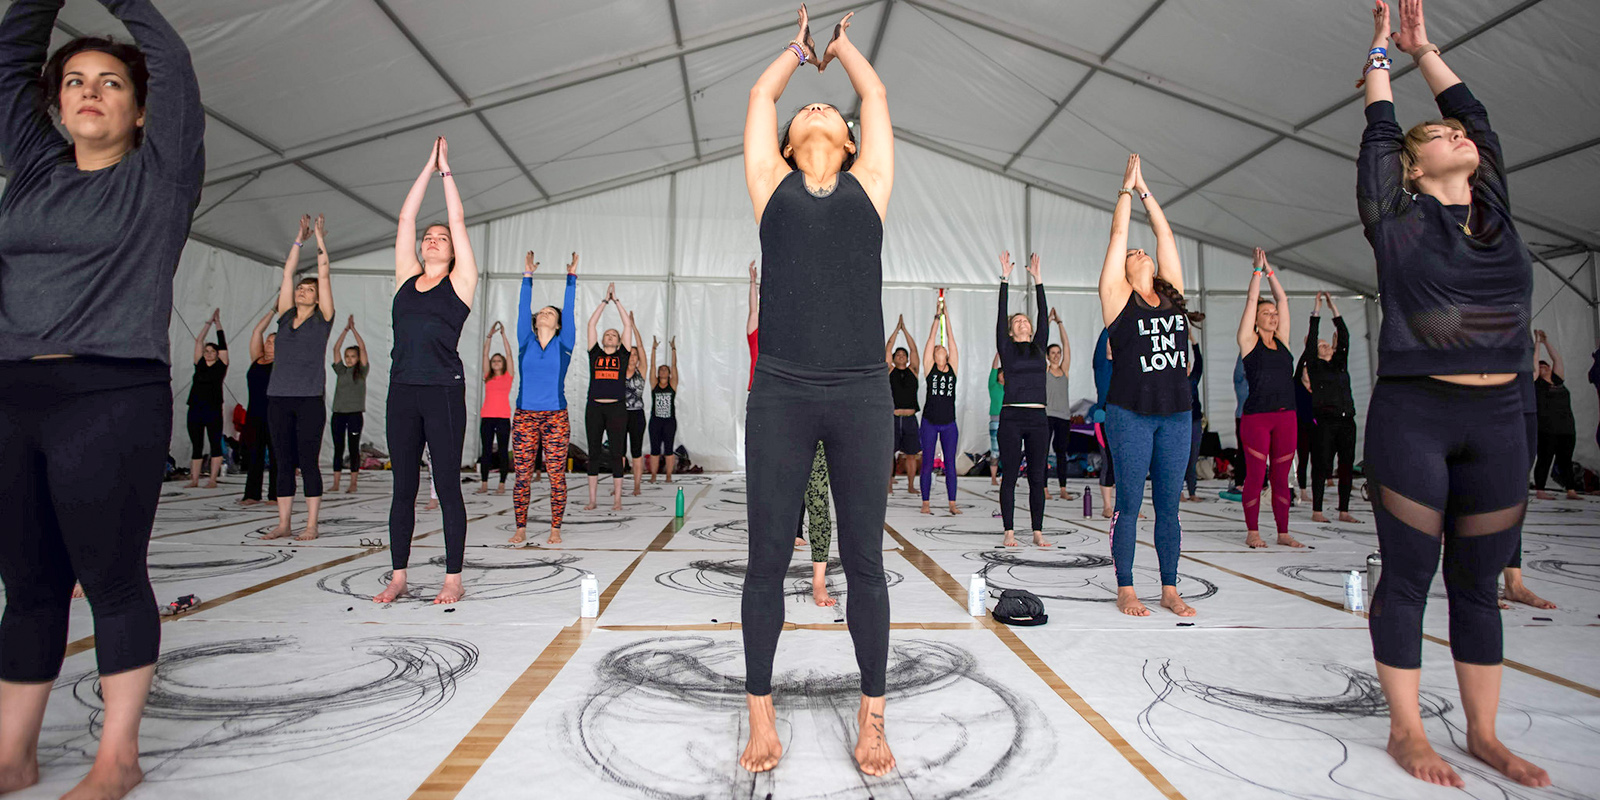 Yoga Outside the Lines at Wanderlust